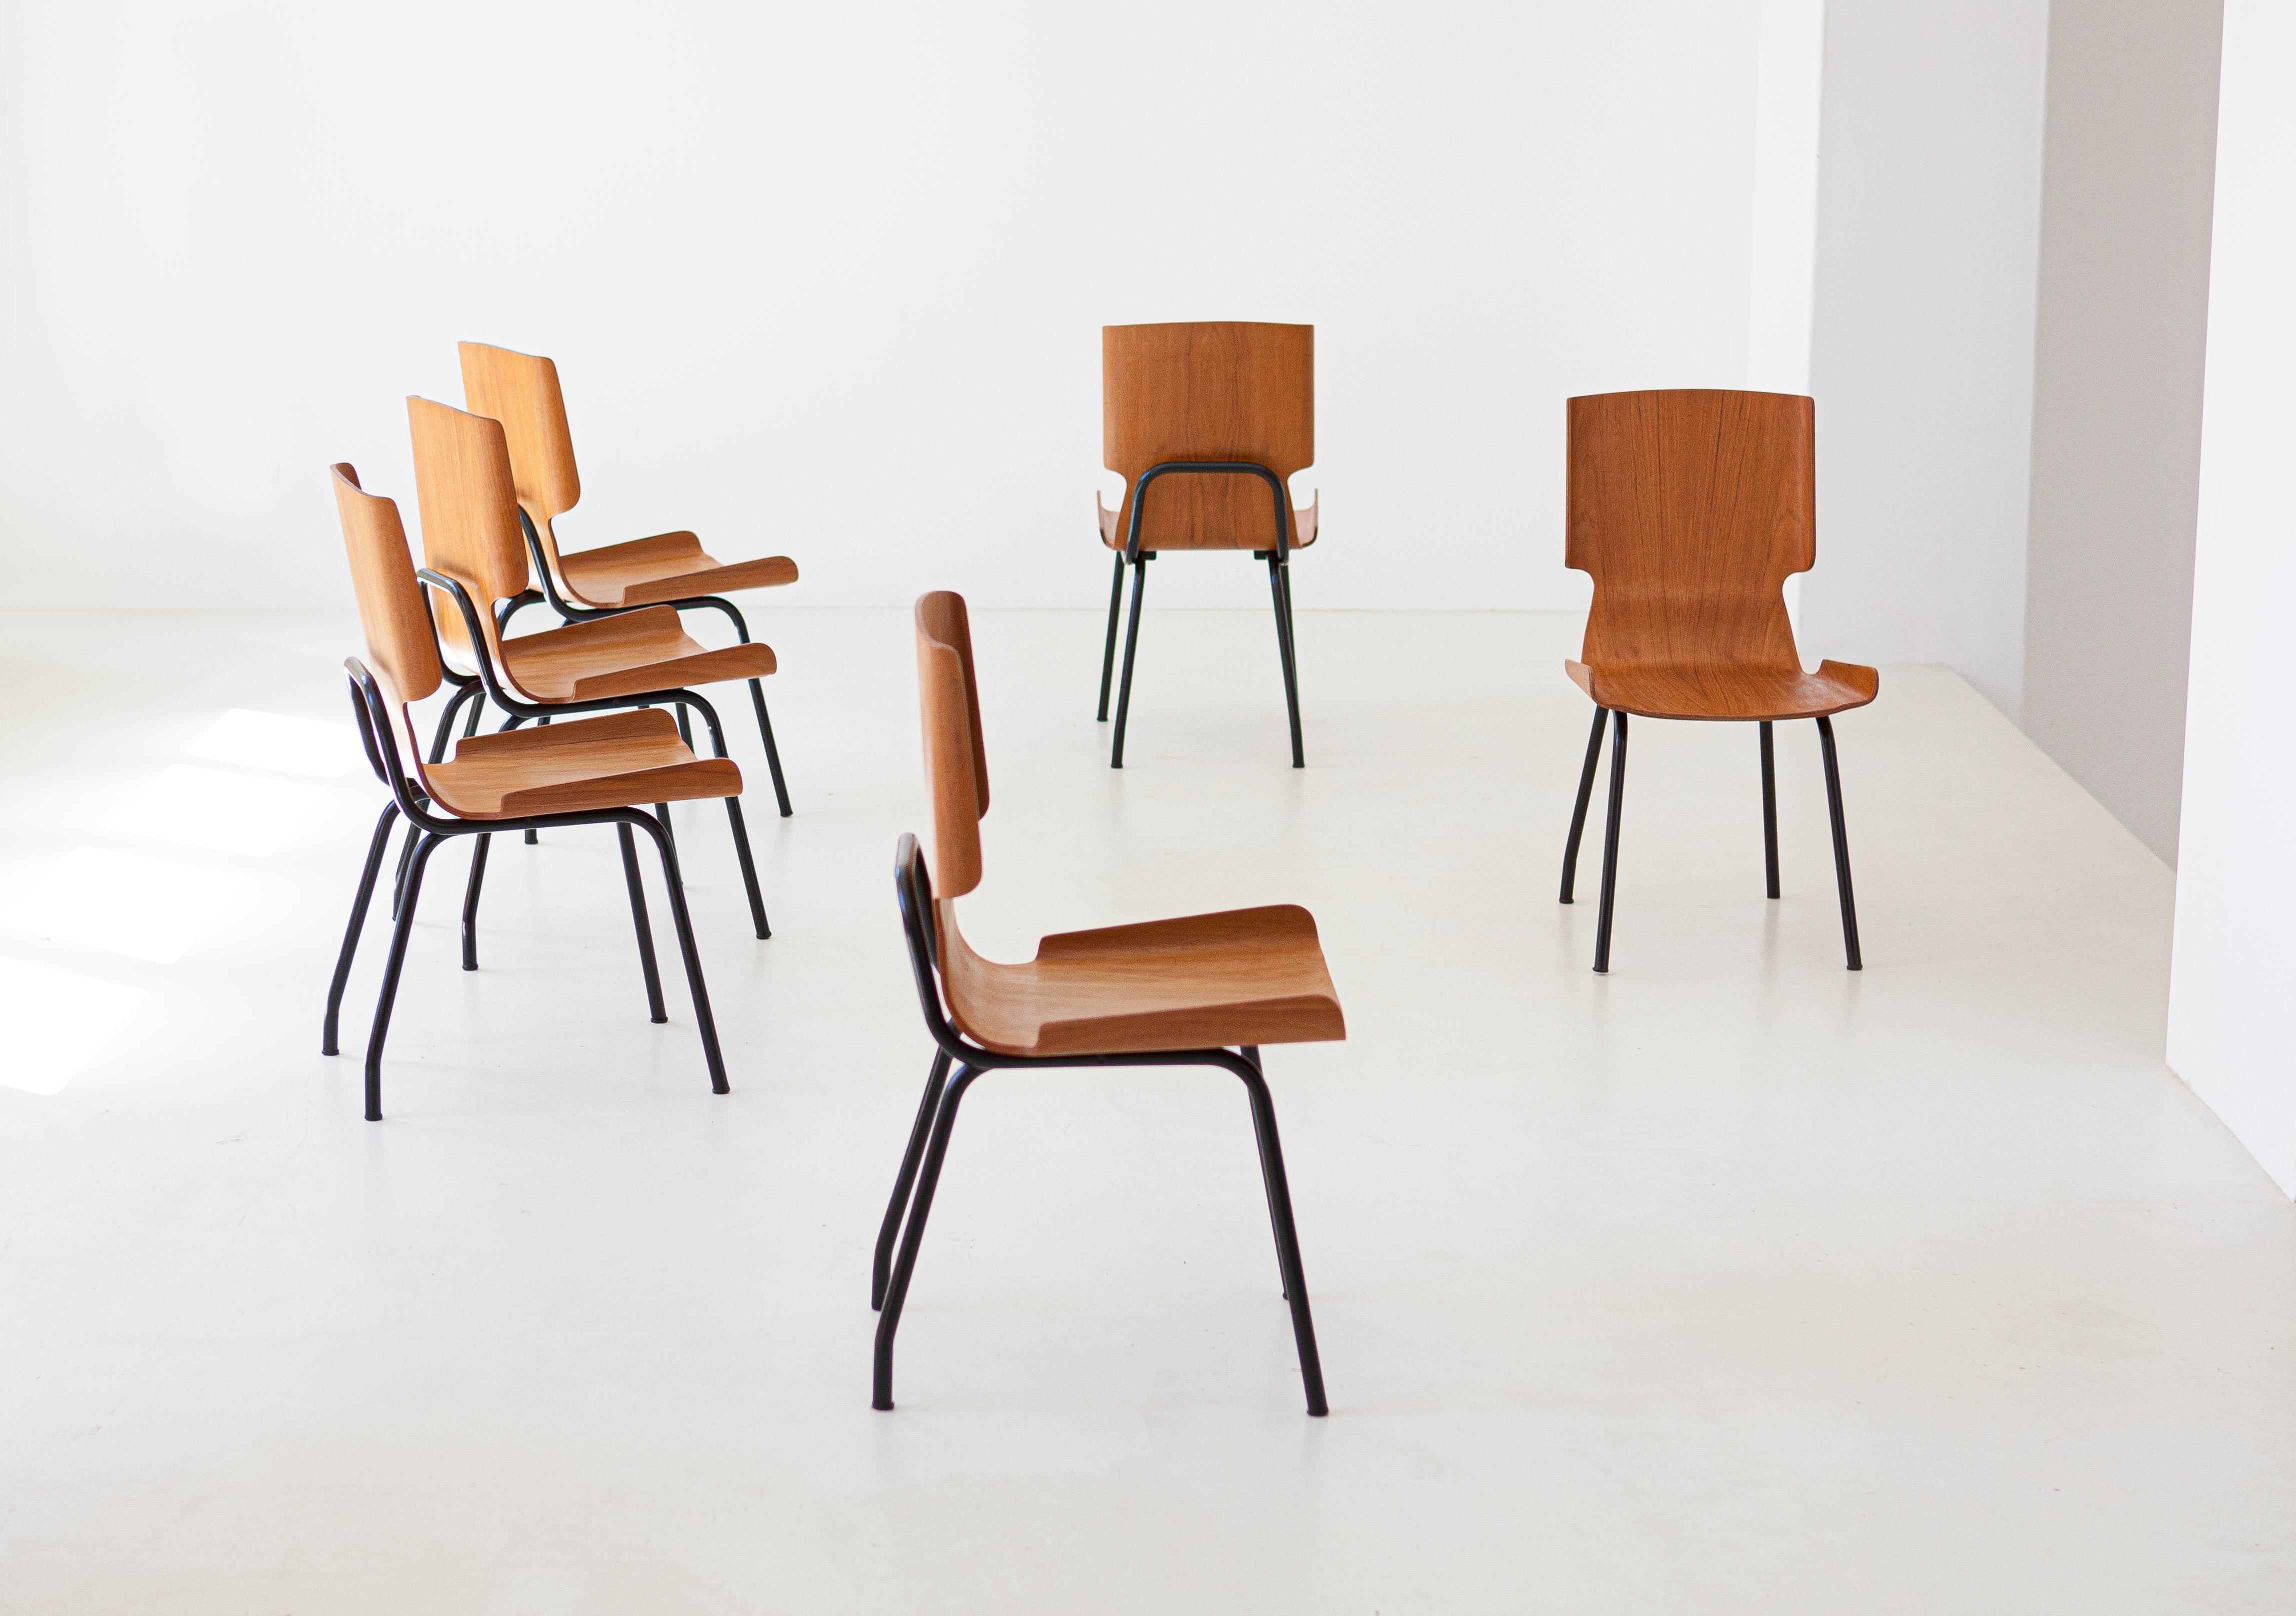 1950s-set-of-six-curved-teak-chairs-by-carlo-ratti-7-se311